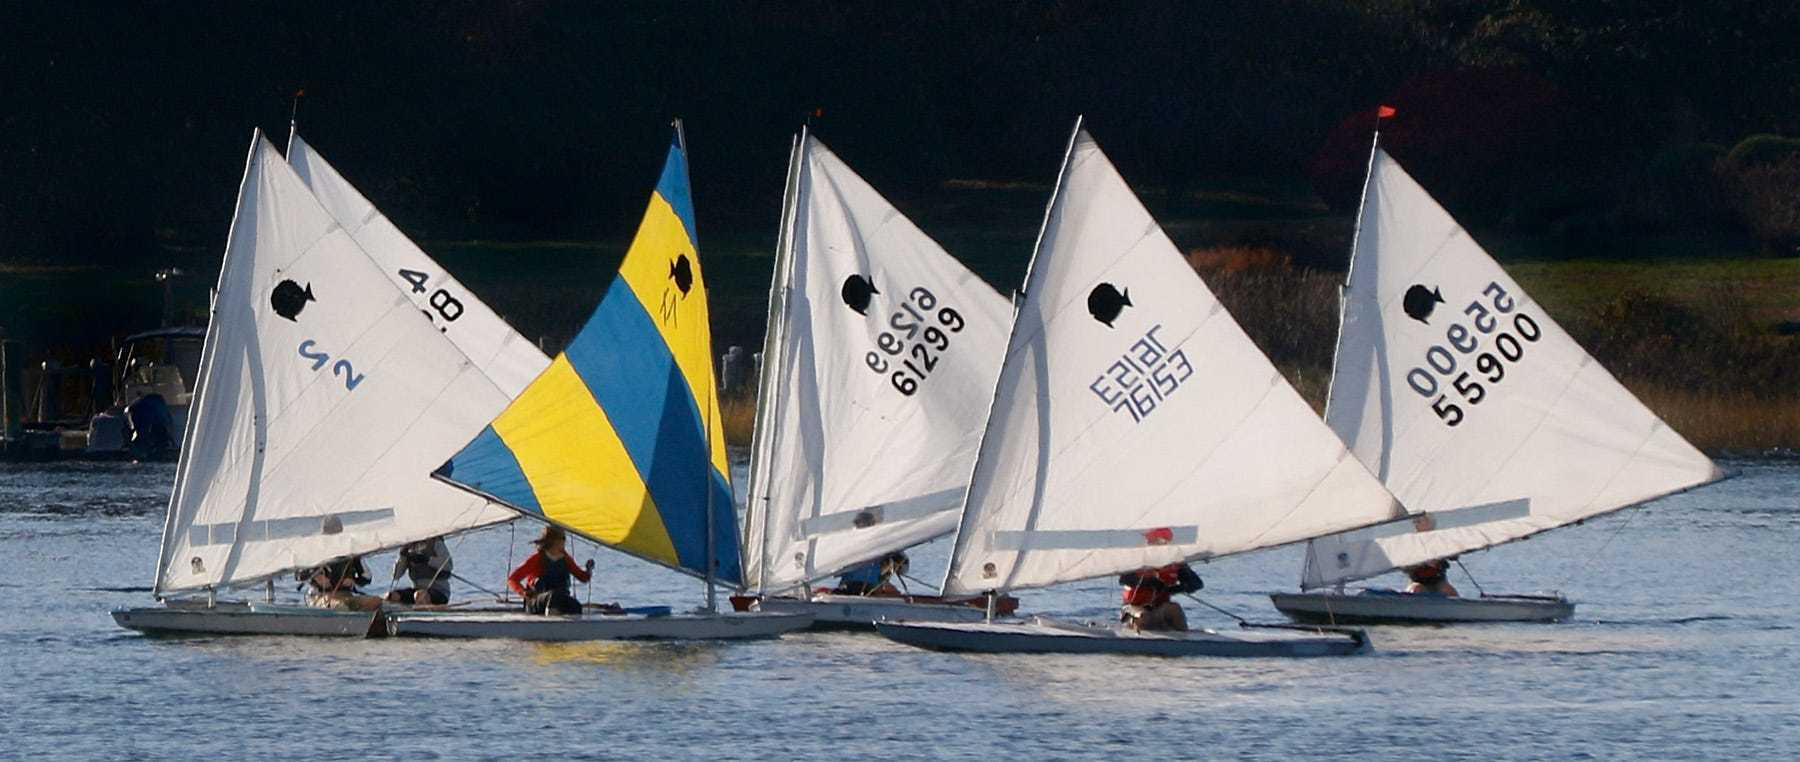 A small sunfish regatta under sail in the waters off Warren Town Beach on a Sunday afternoon. afternoon.